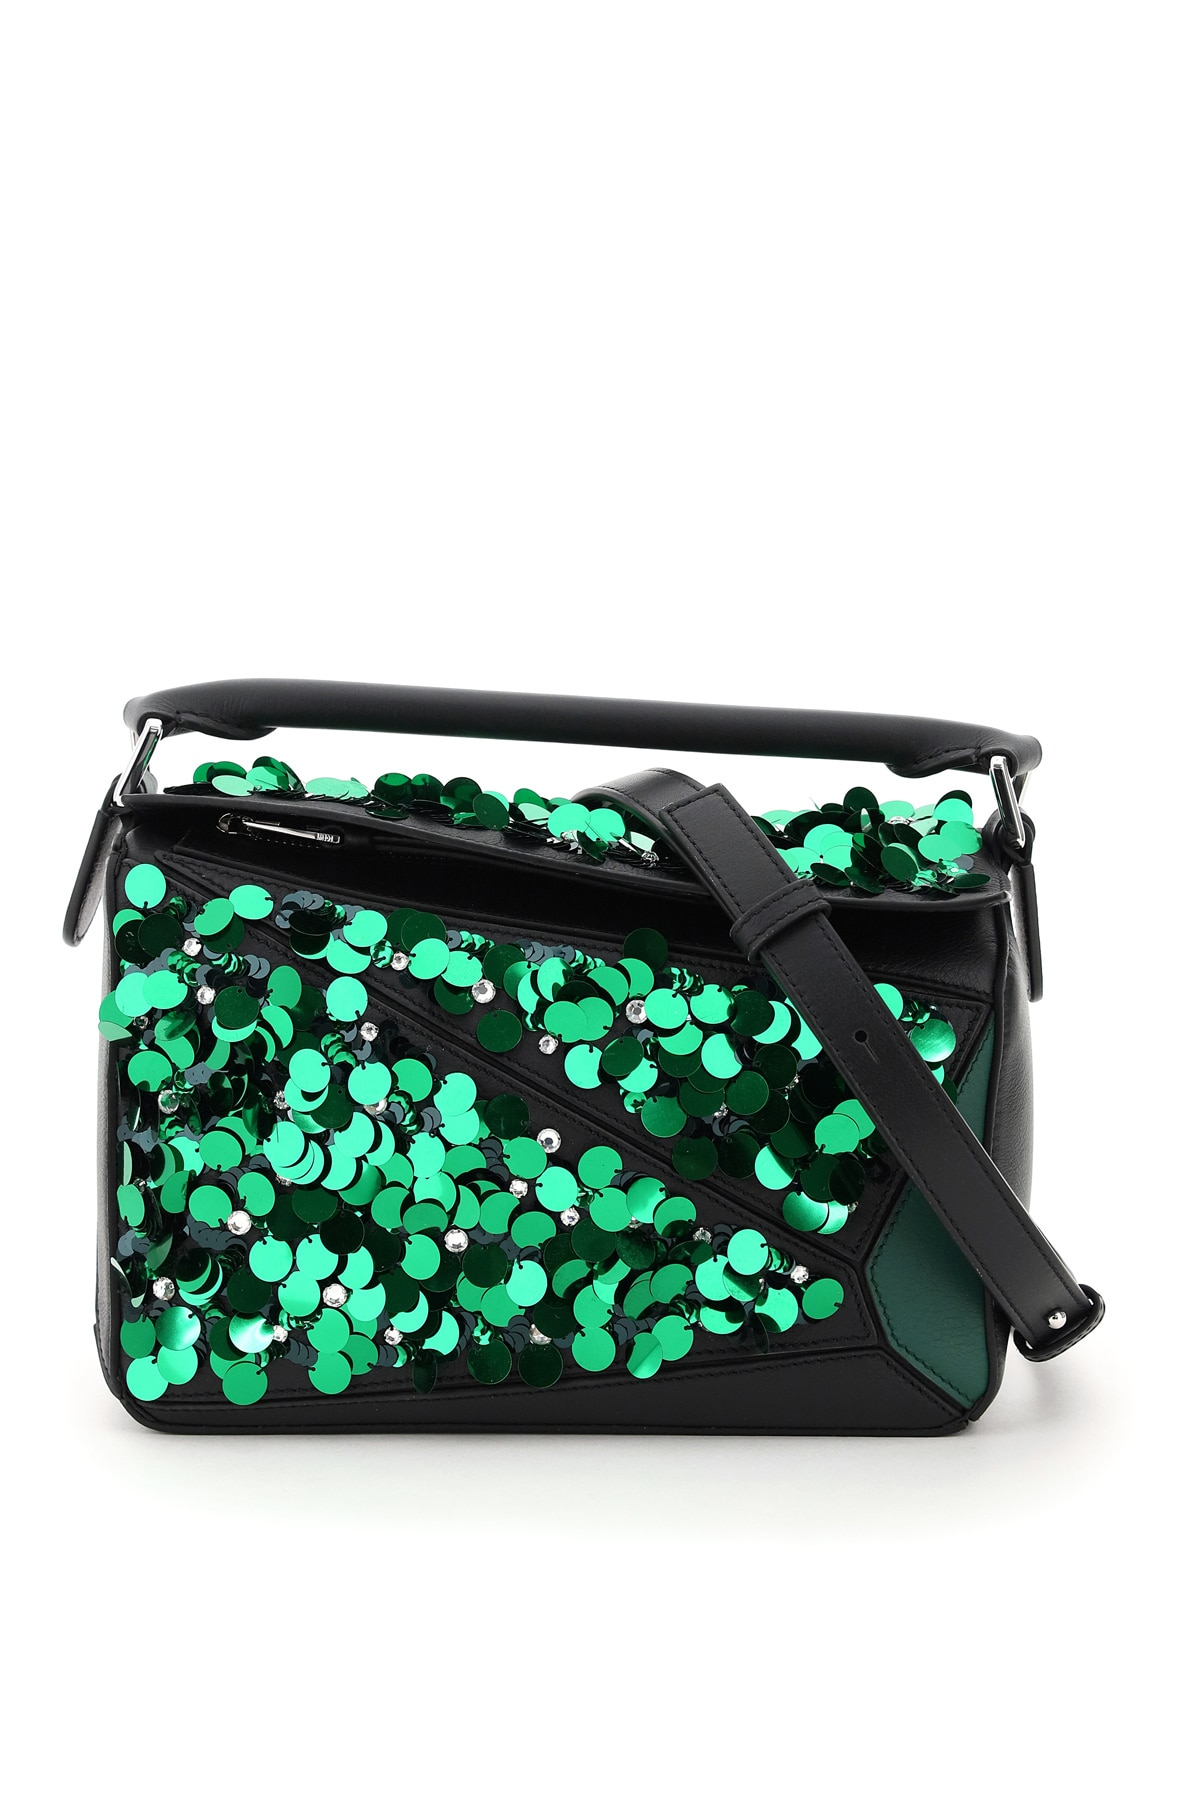 Loewe Leathers SMALL PUZZLE BAG WITH SEQUINS